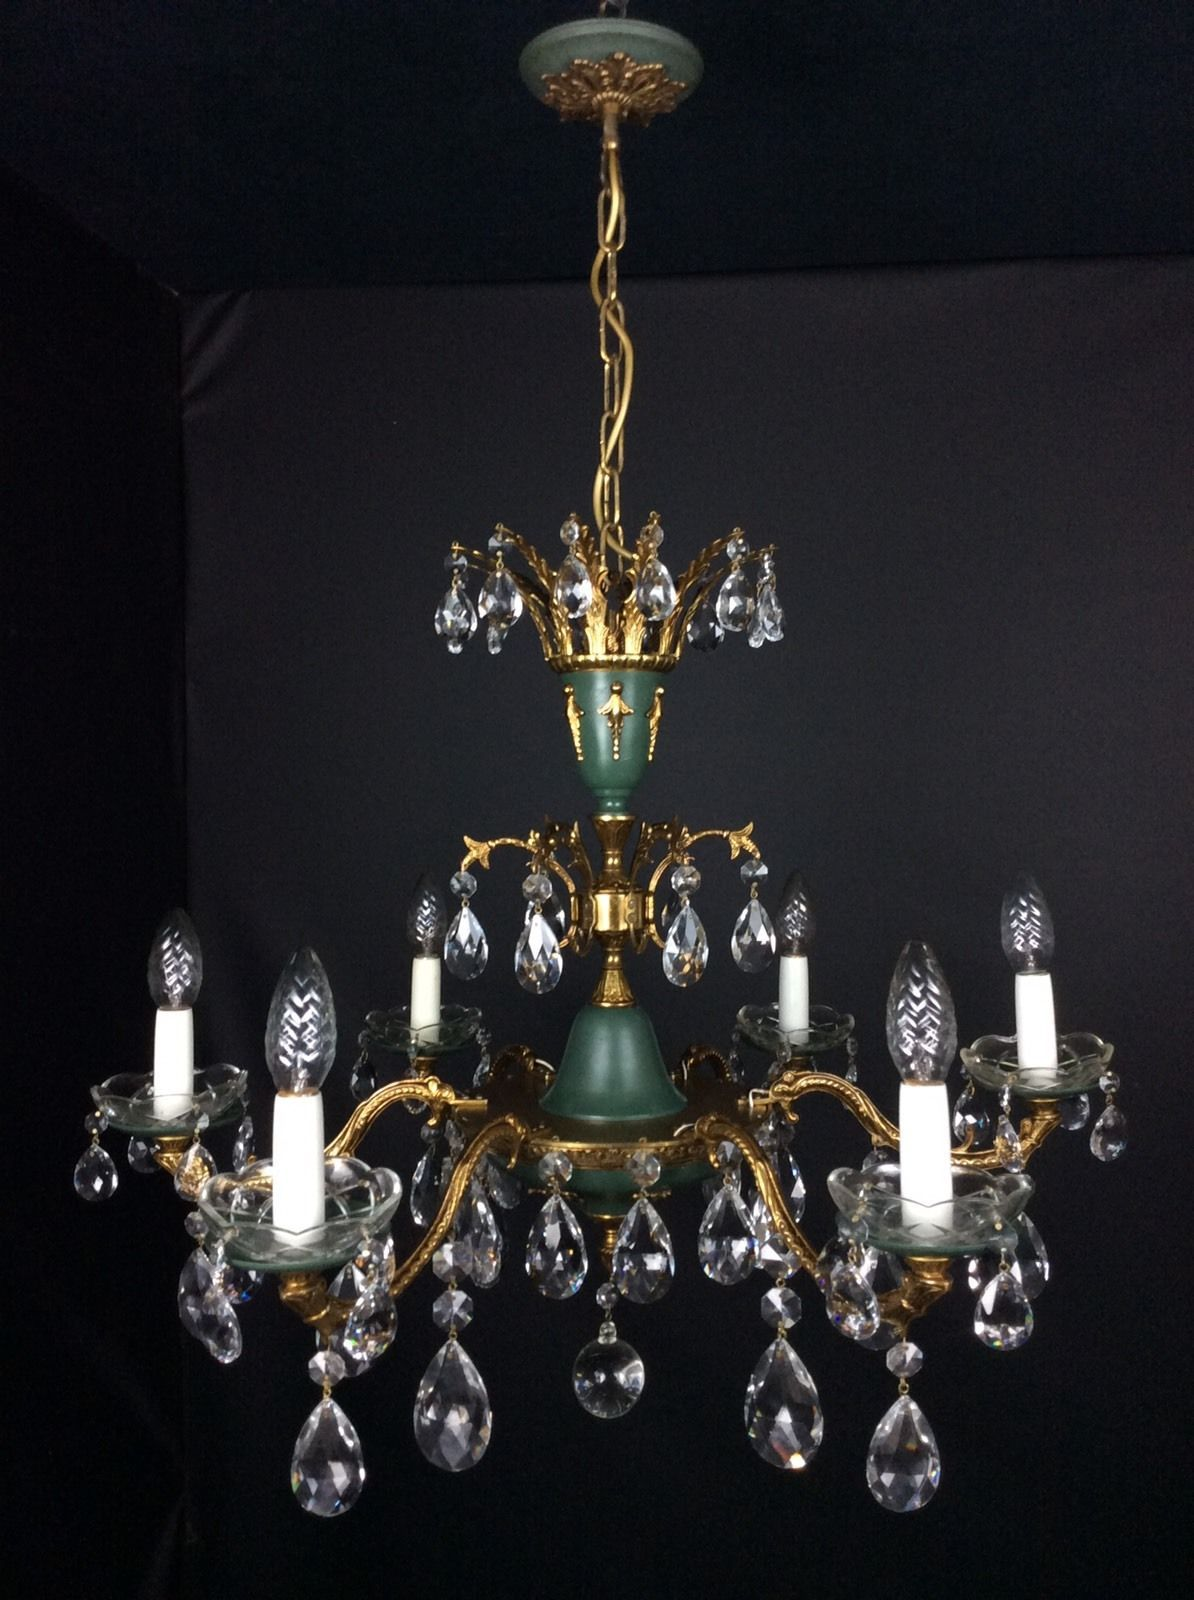 French Empire Crystal Chandeliers Candle Holders Candles Sticks Porta Velas Candy Candlesticks Lights